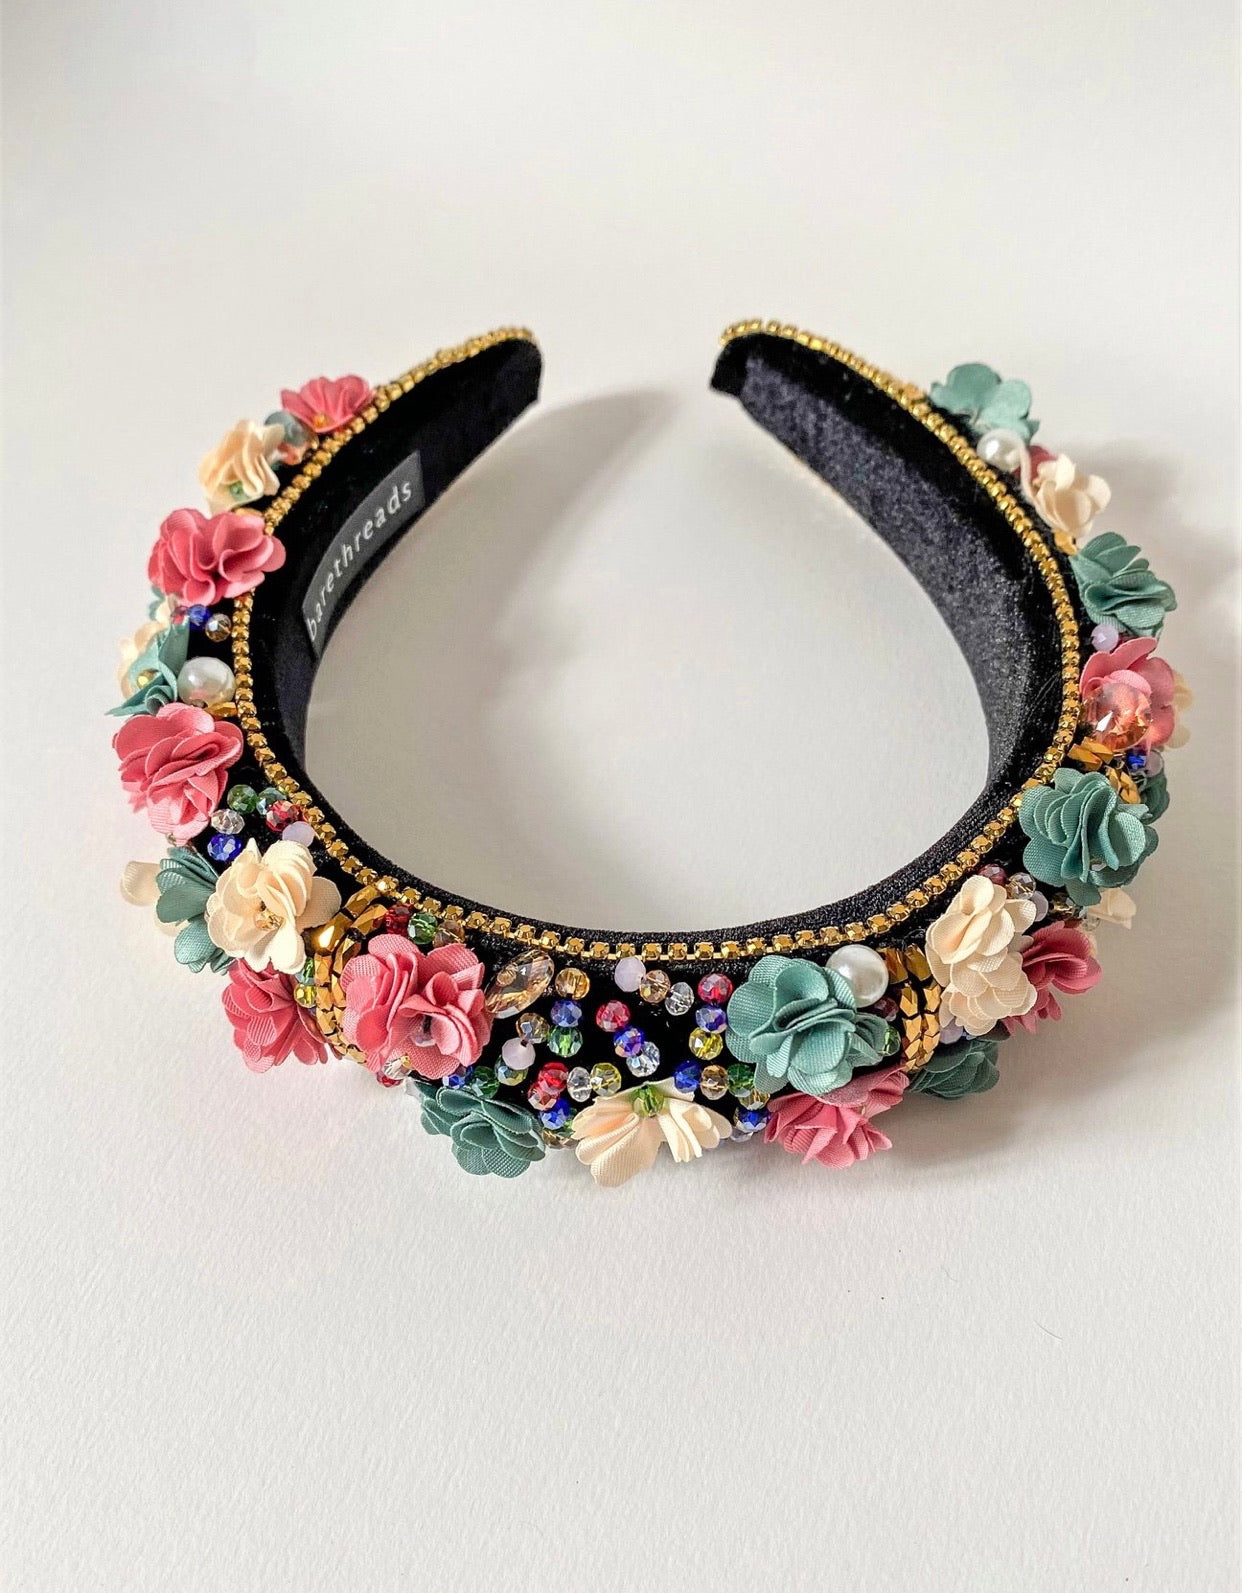 THE DAPHNE FLORAL ENCRUSTED HEADBAND